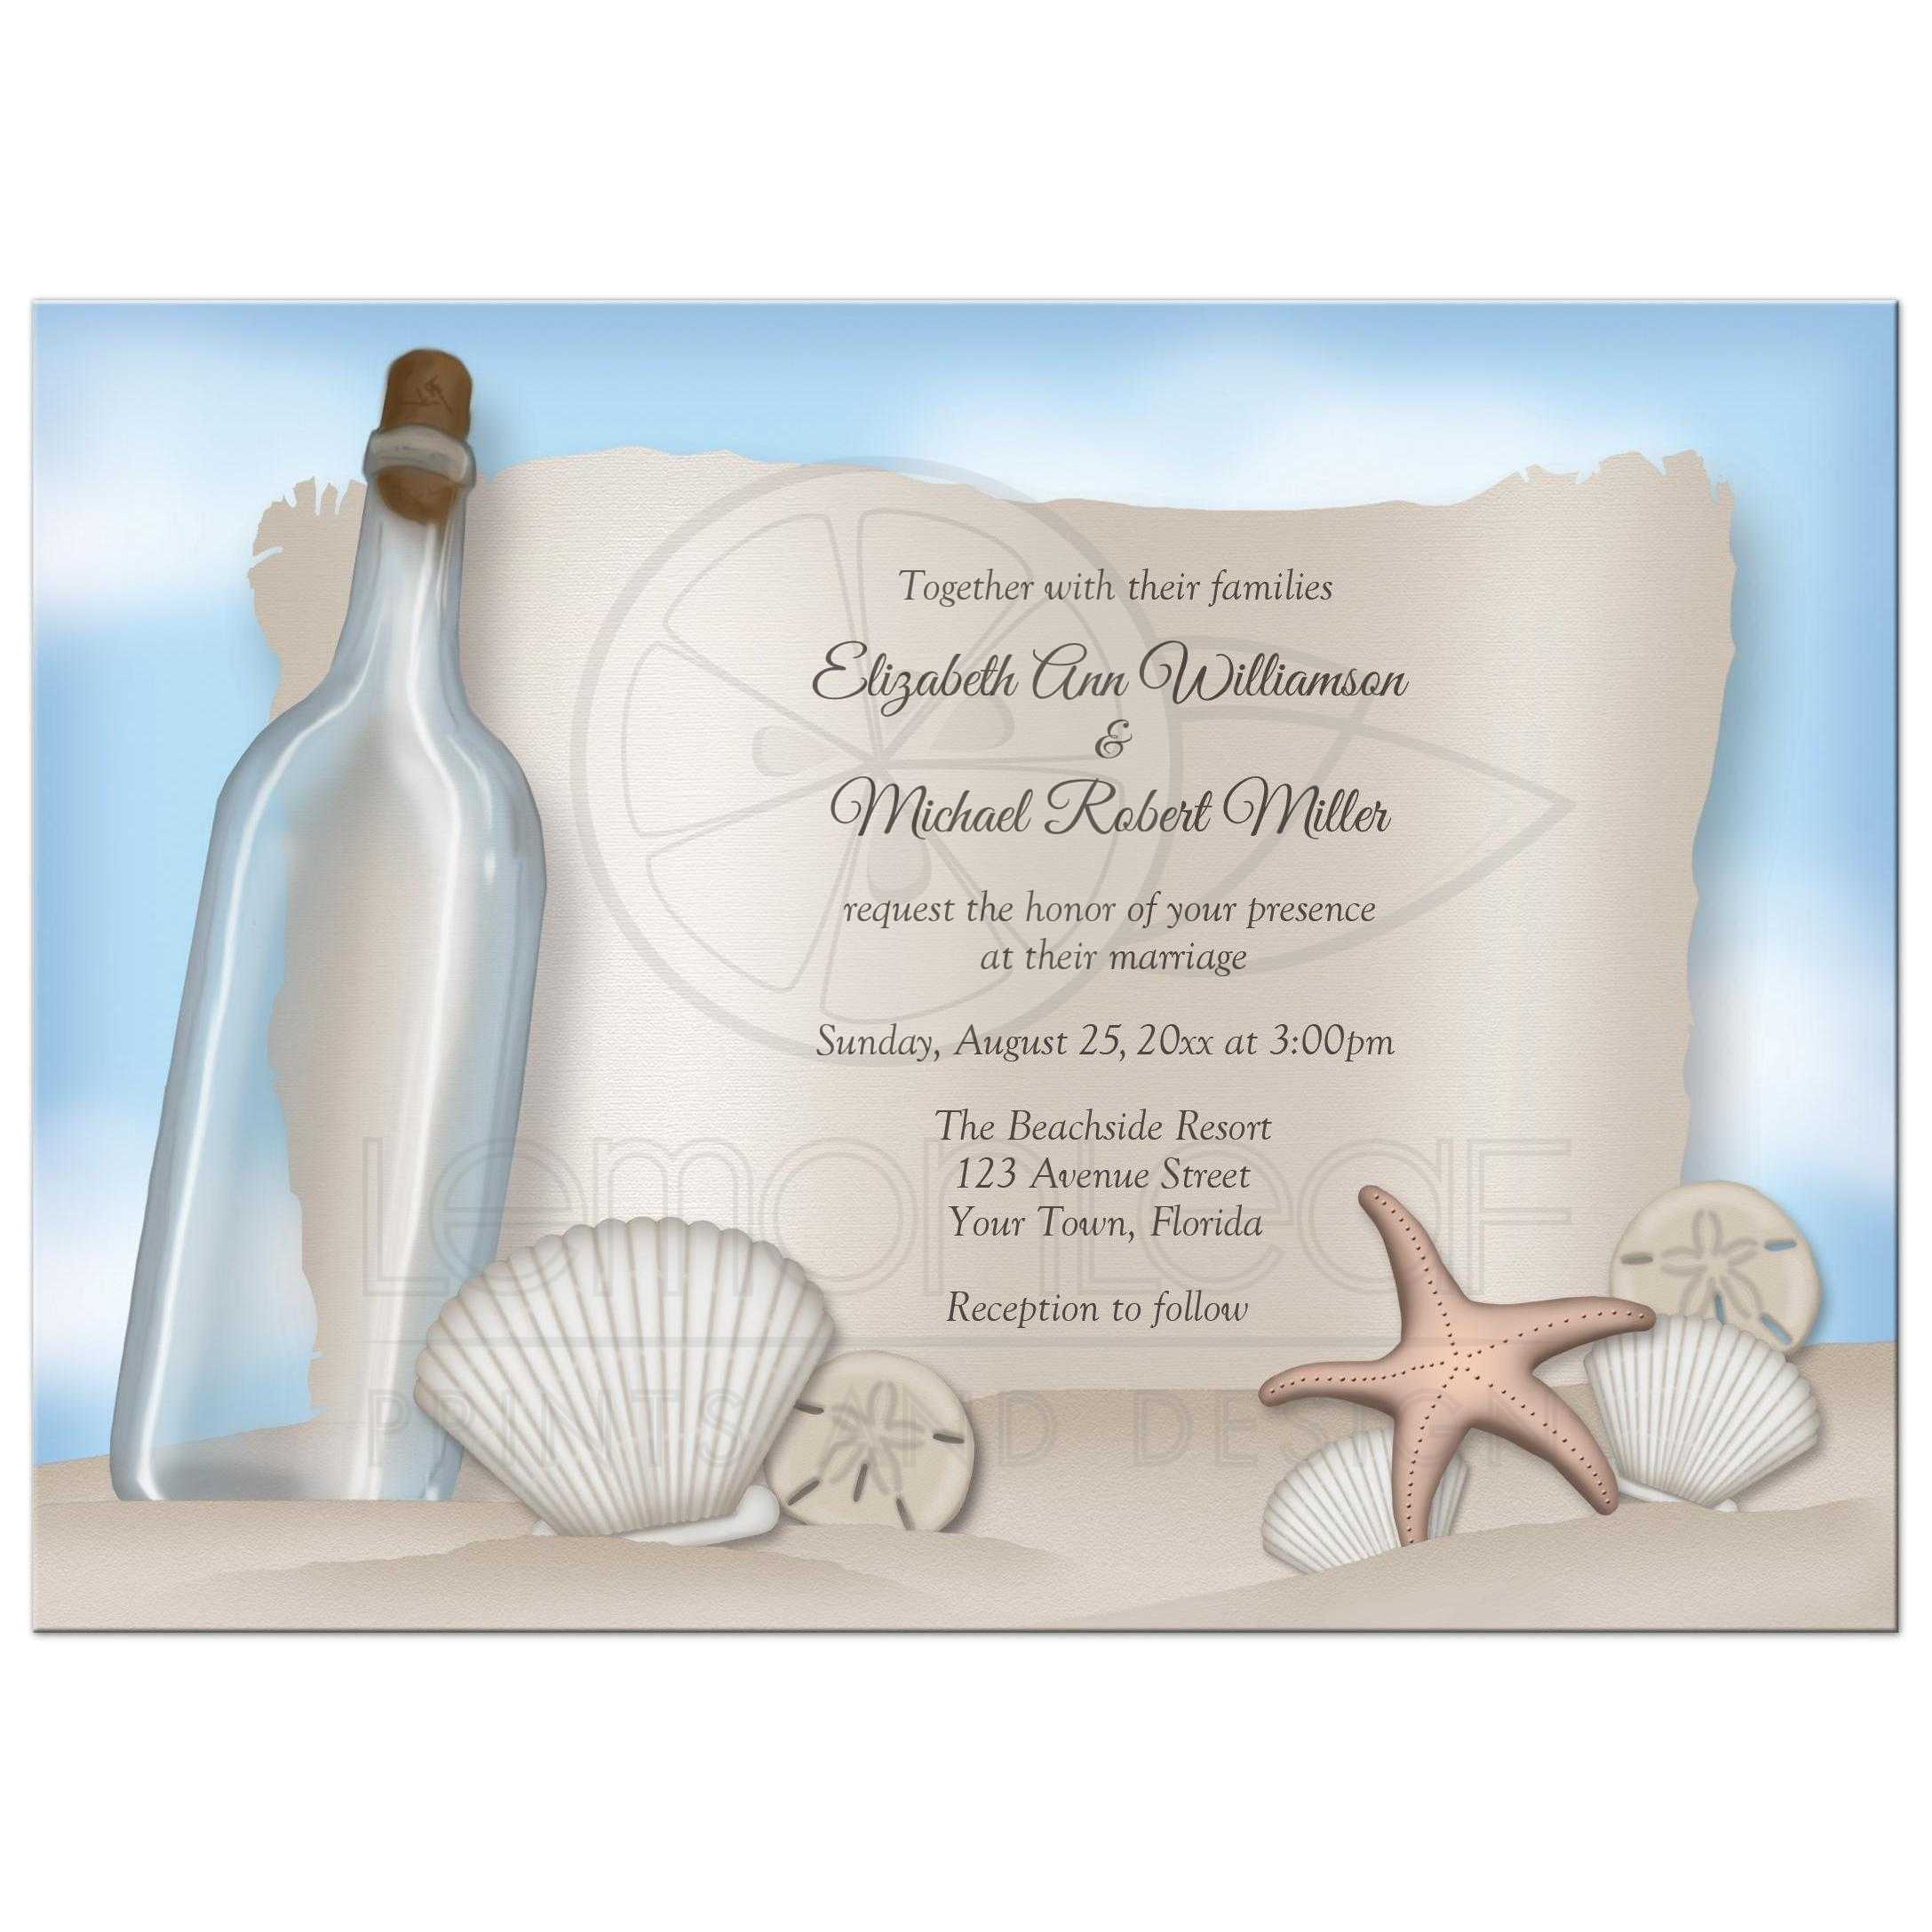 Graduation Reception Invitation Wording is good invitations example